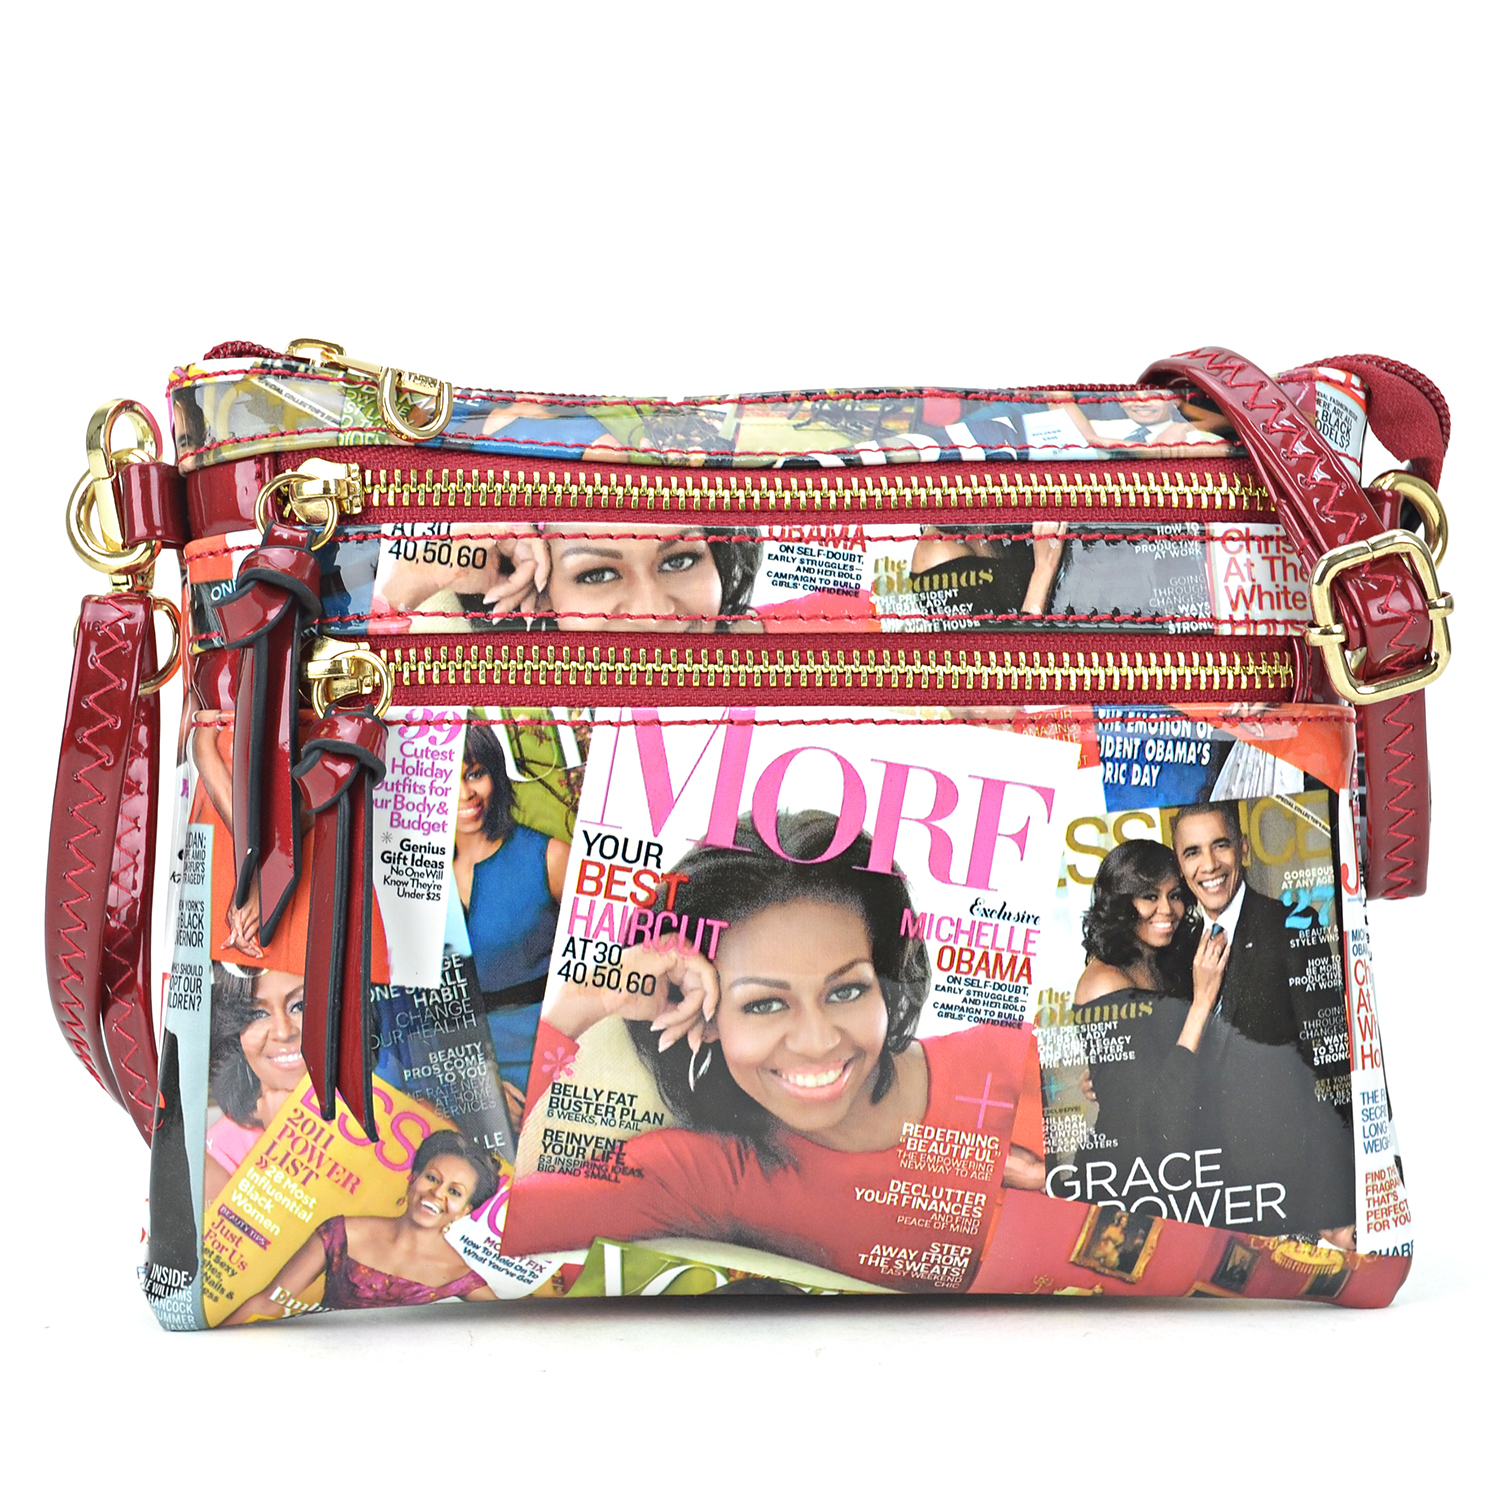 Michelle Obama Magazine Cover Printed Patent Leather All-In-One Crossbody/ Messenger Clutch Bag